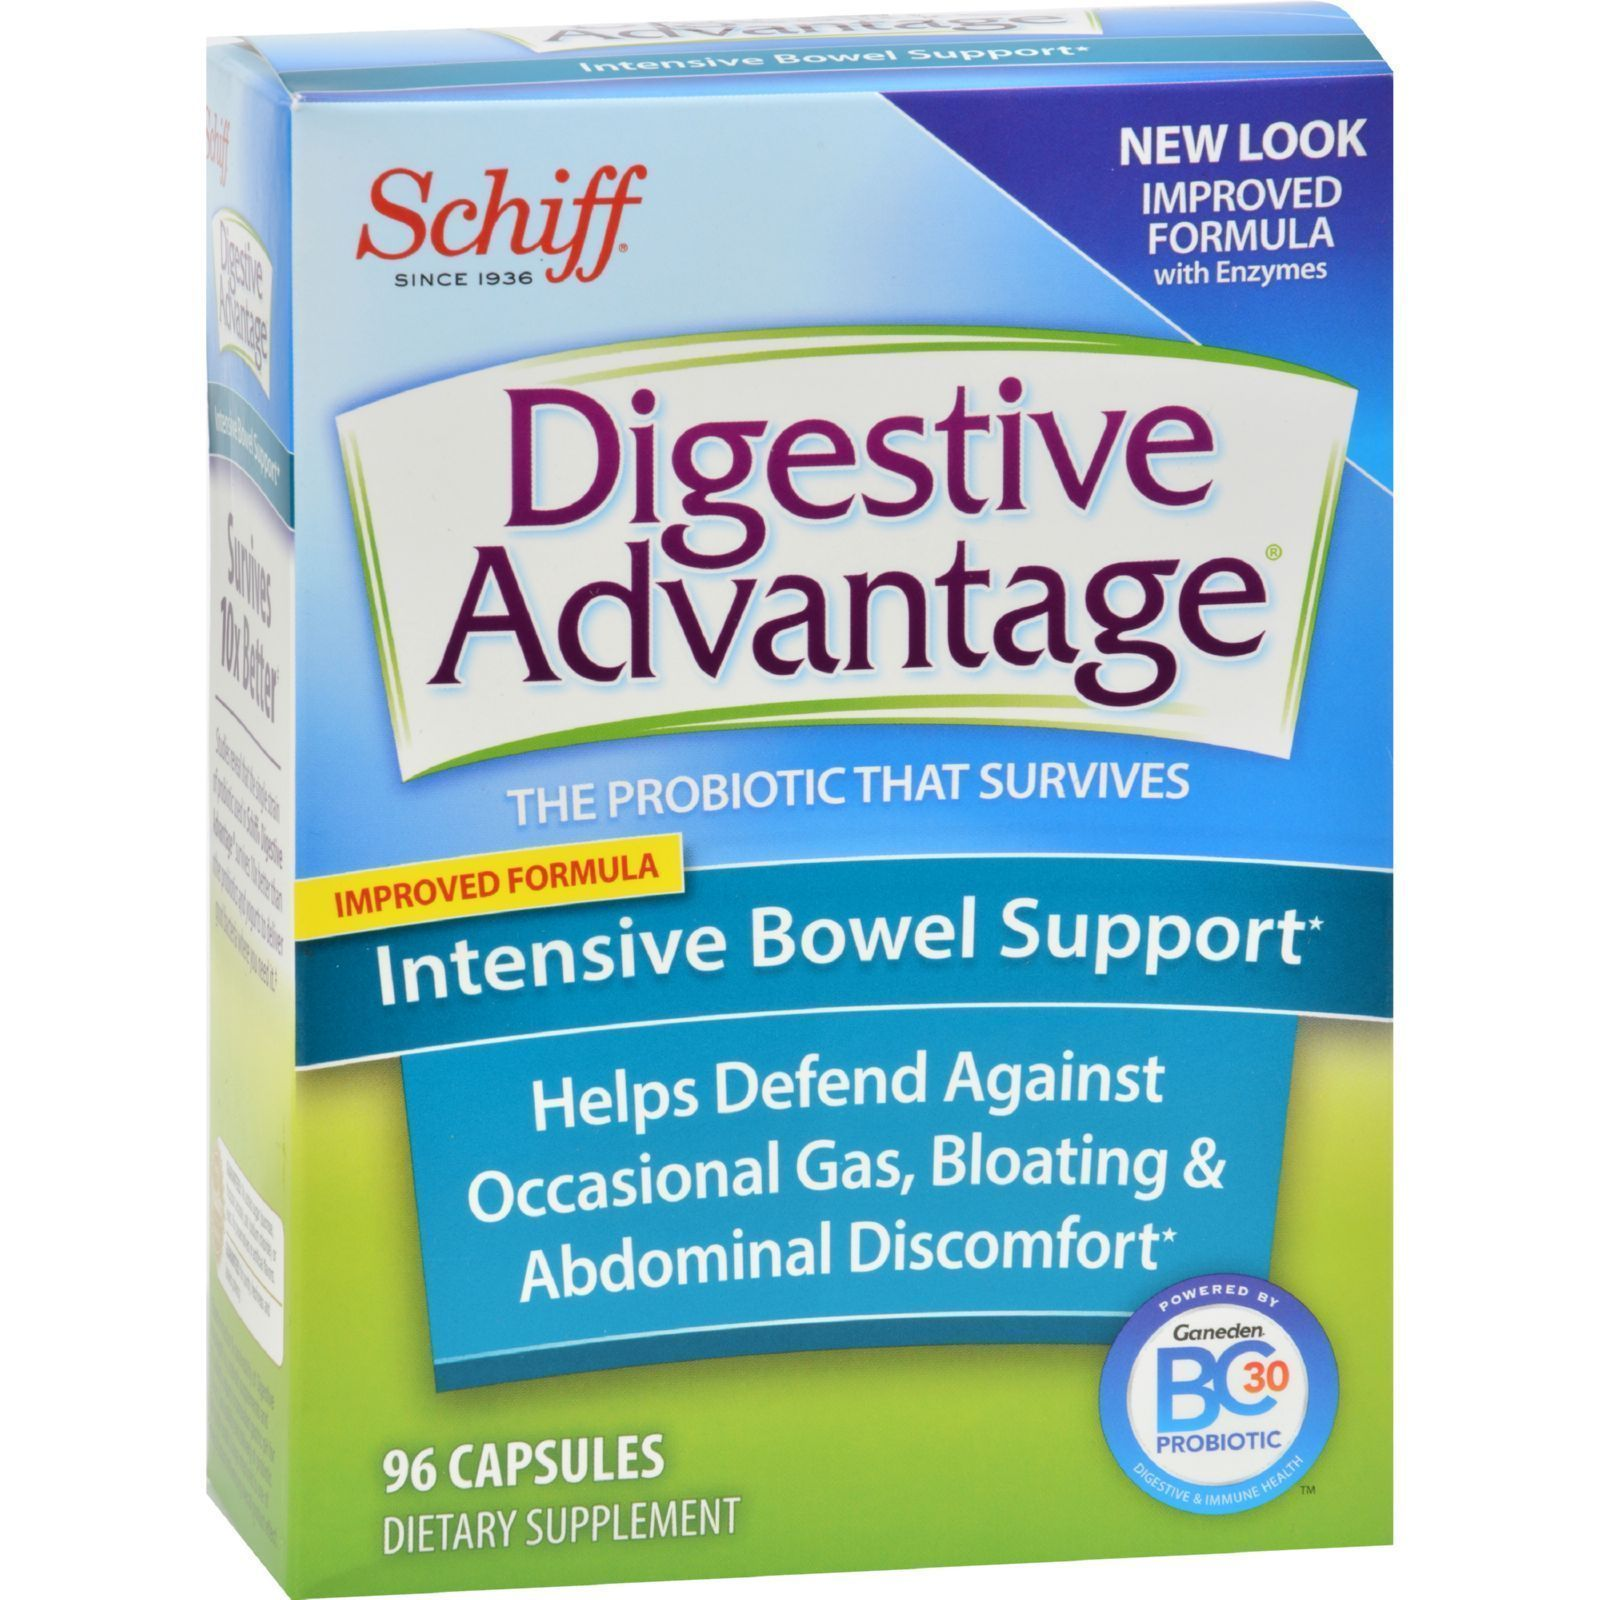 Schiff Vitamins Digestive Advantage - Intensive Bowel Support - 96 Capsules  #health #nutrition #org...